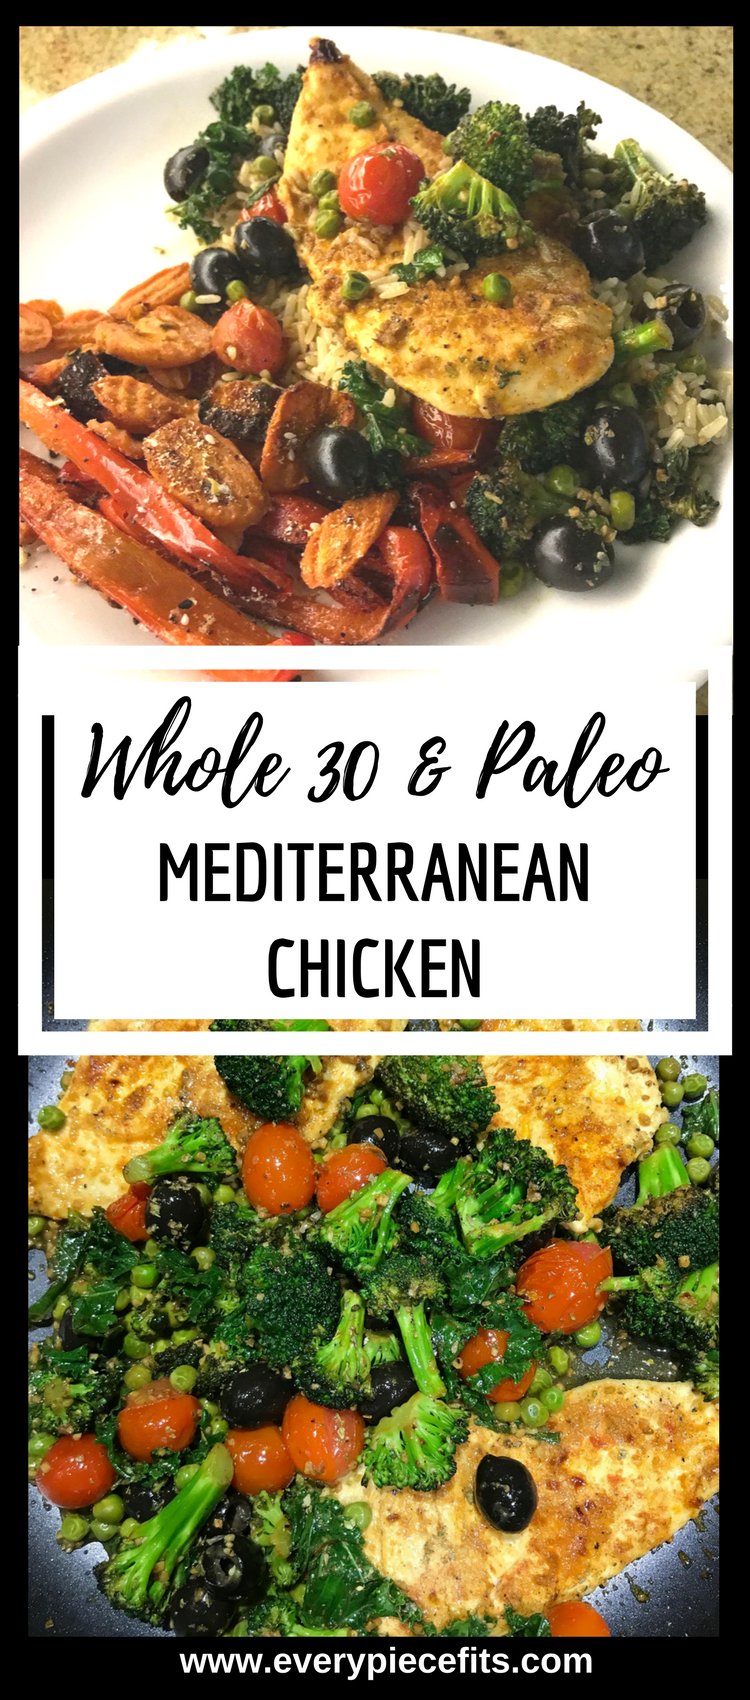 Whole 30 Mediterranean Chicken.png